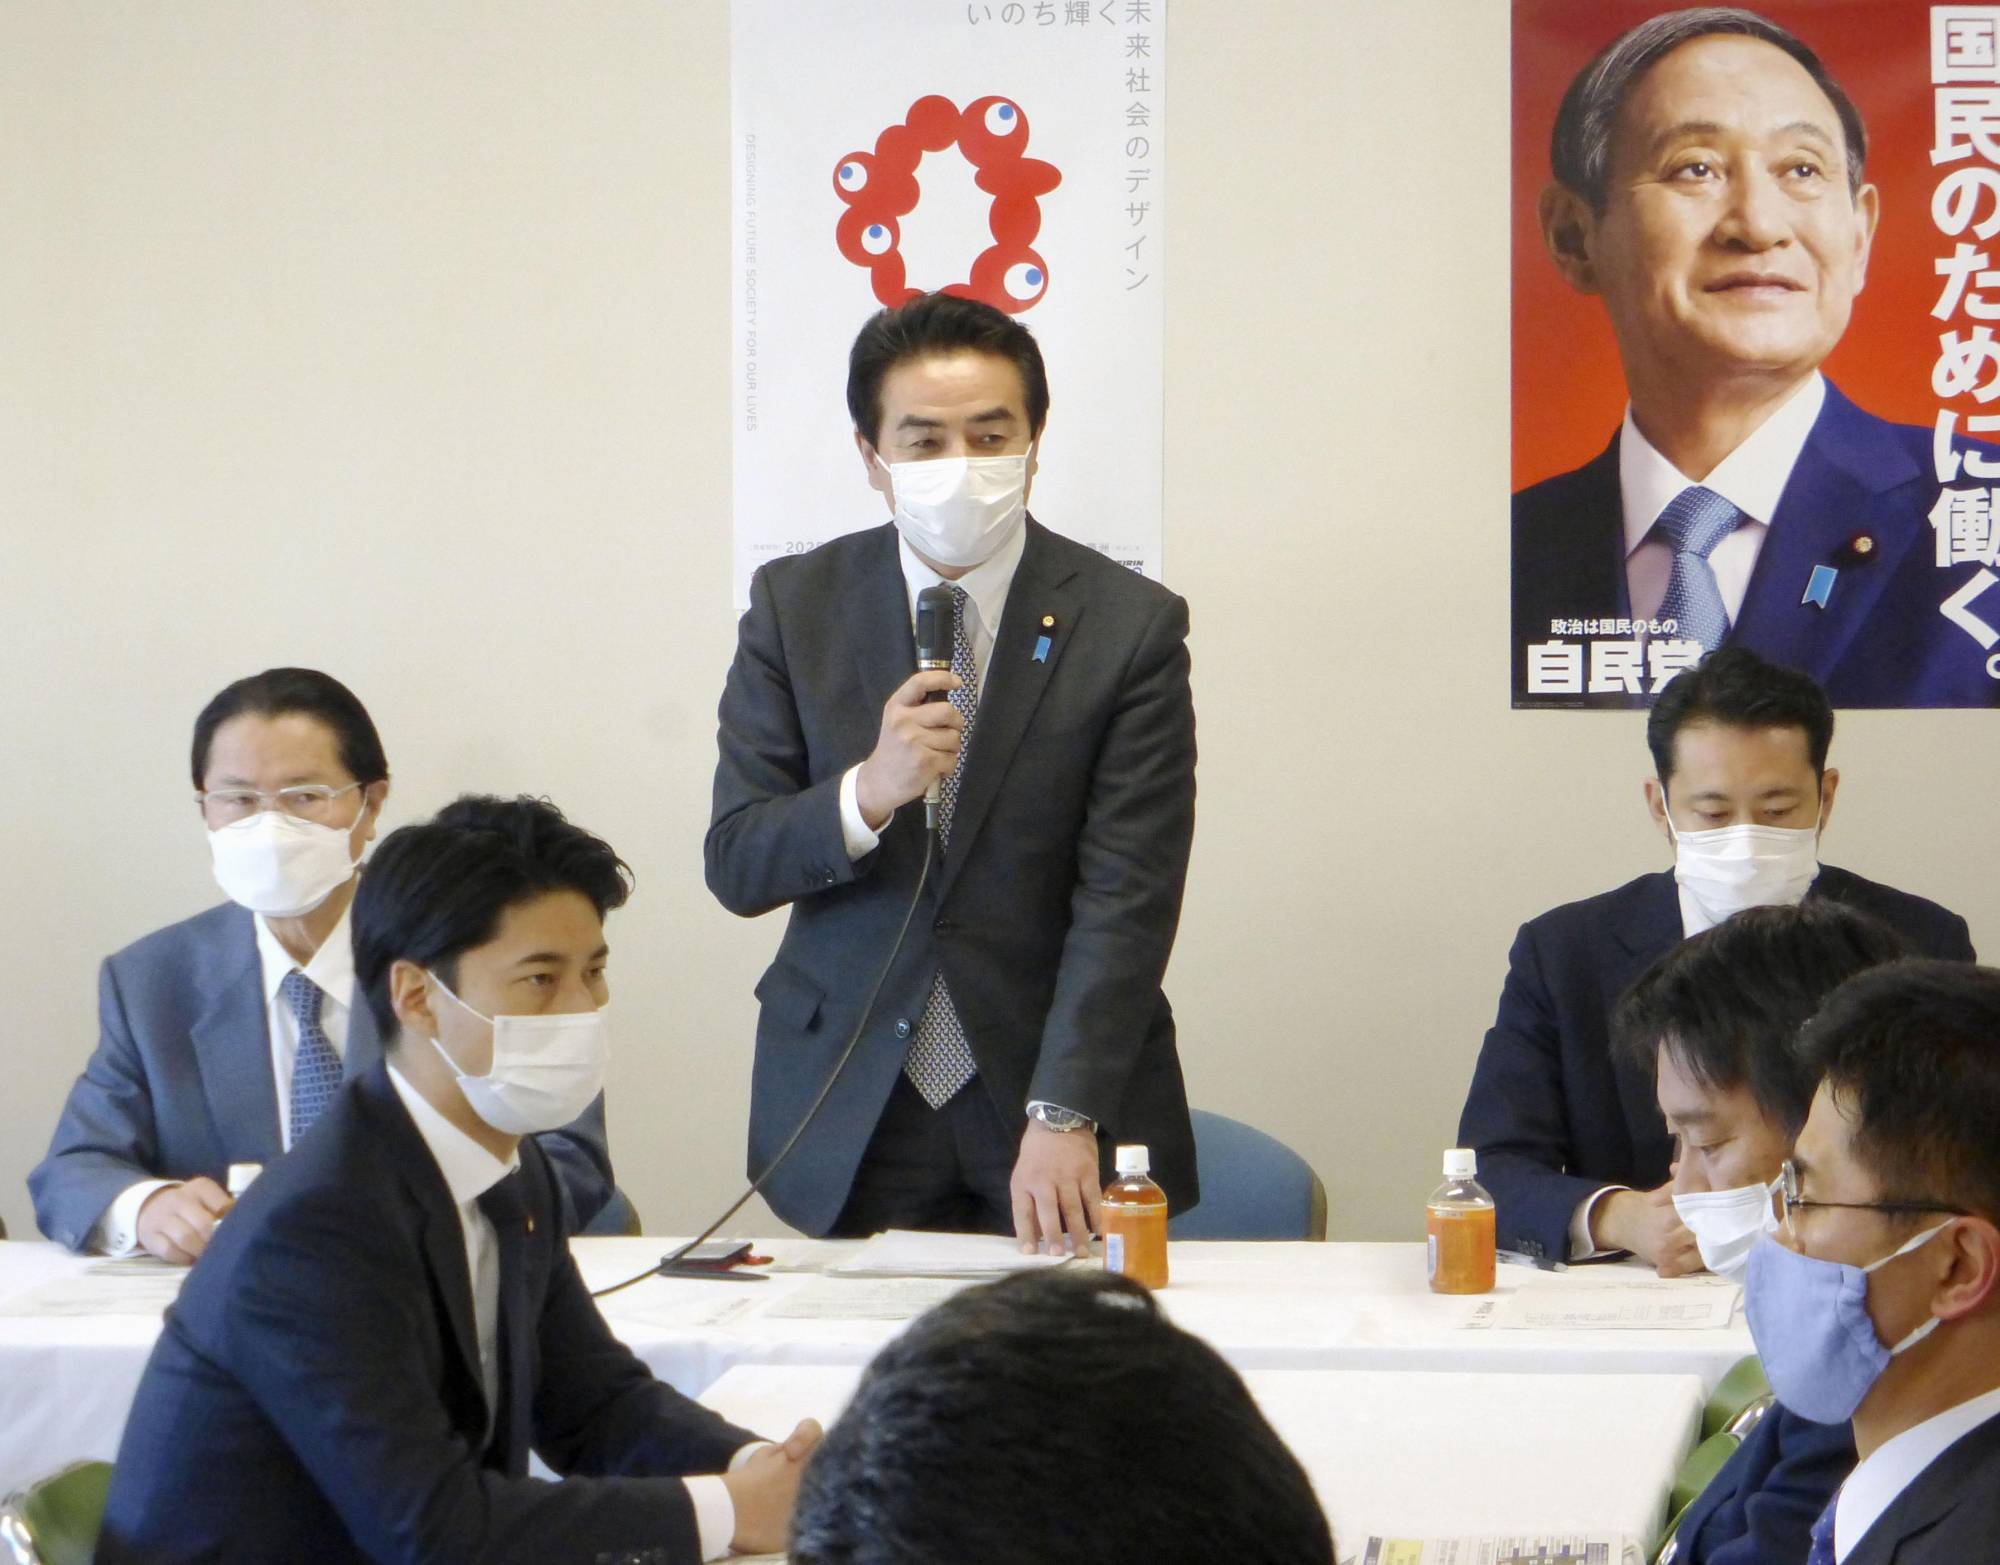 Masahisa Sato (center), head of the Liberal Democratic Party's foreign affairs committee, addresses a meeting held by the party in Tokyo in February to discuss countermeasures to China's coast guard law. | KYODO